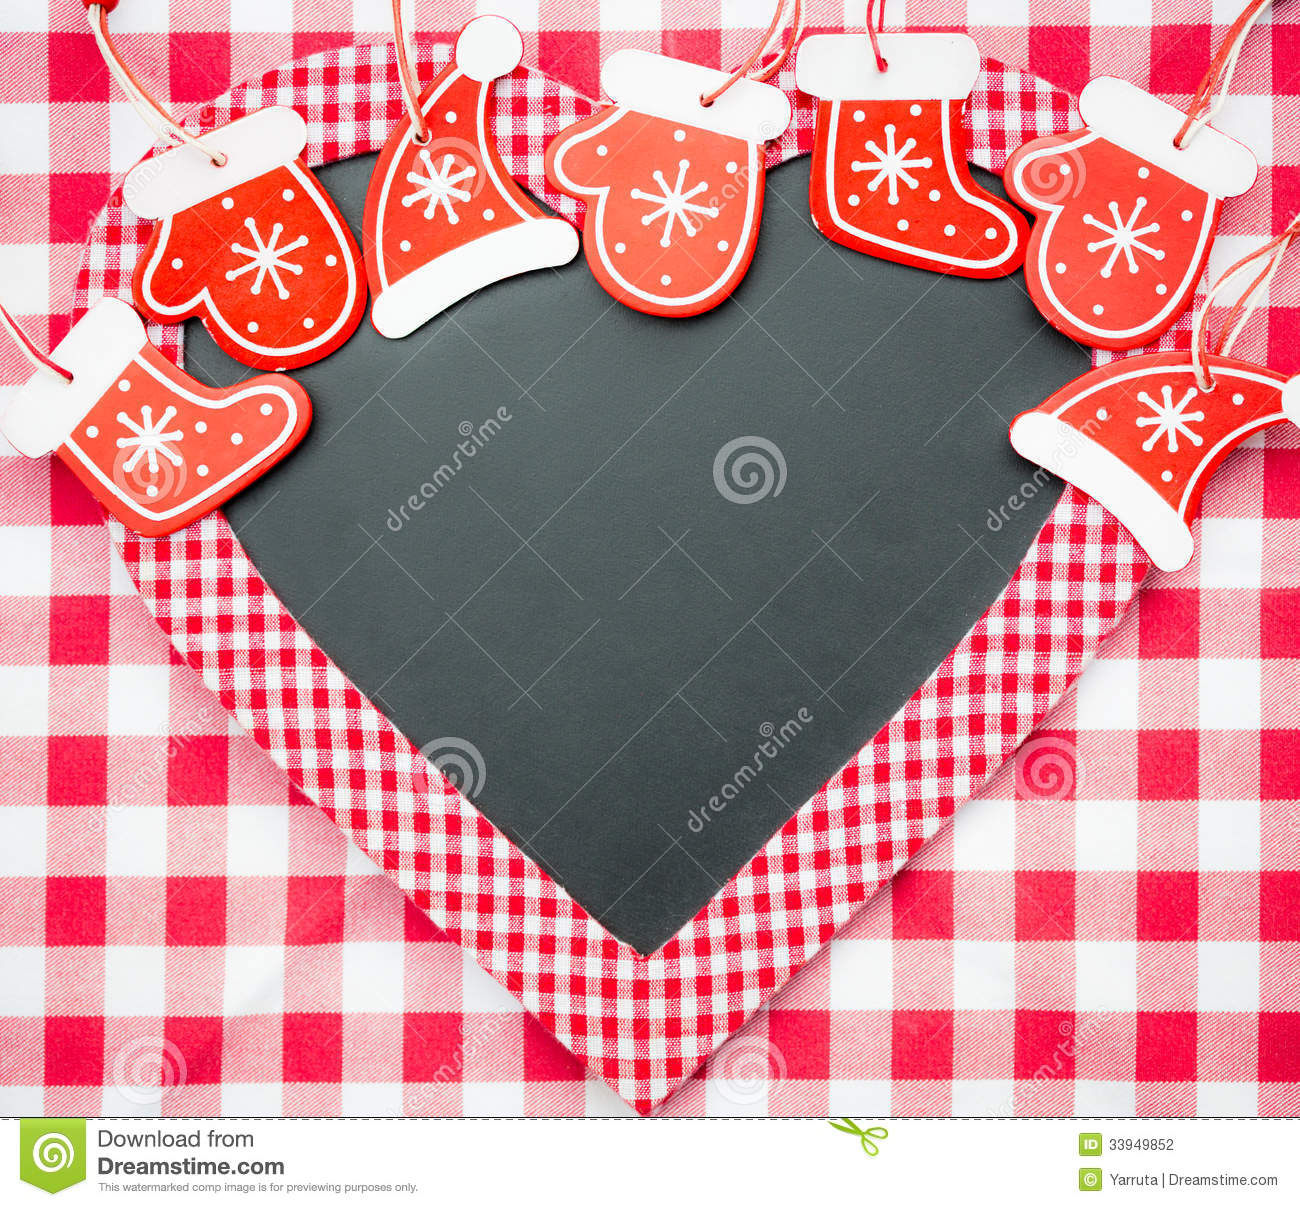 card blank in heart shape with christmas tree decorations